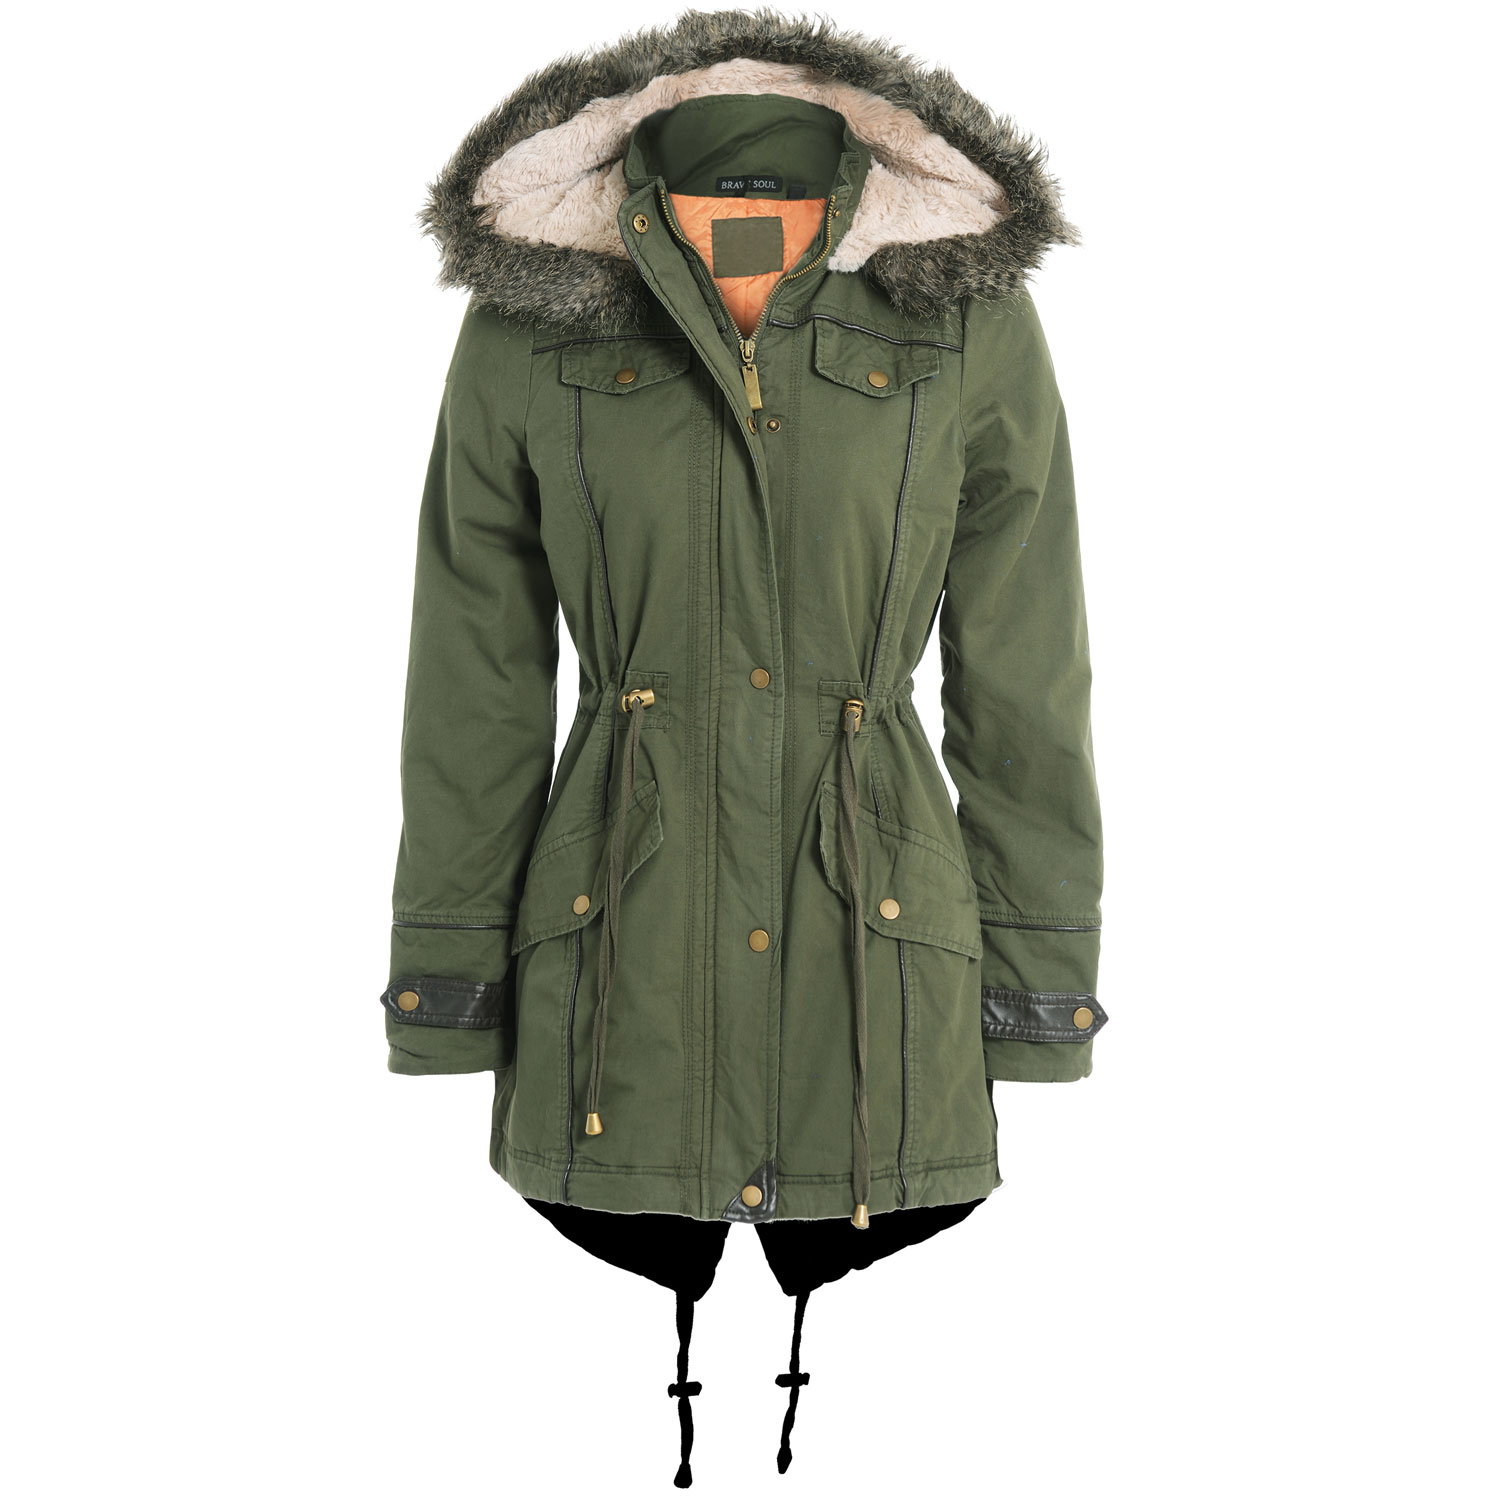 Sears has women's outerwear to stay warm during cold weather. Find the latest women's coats in stylish designs and colors.